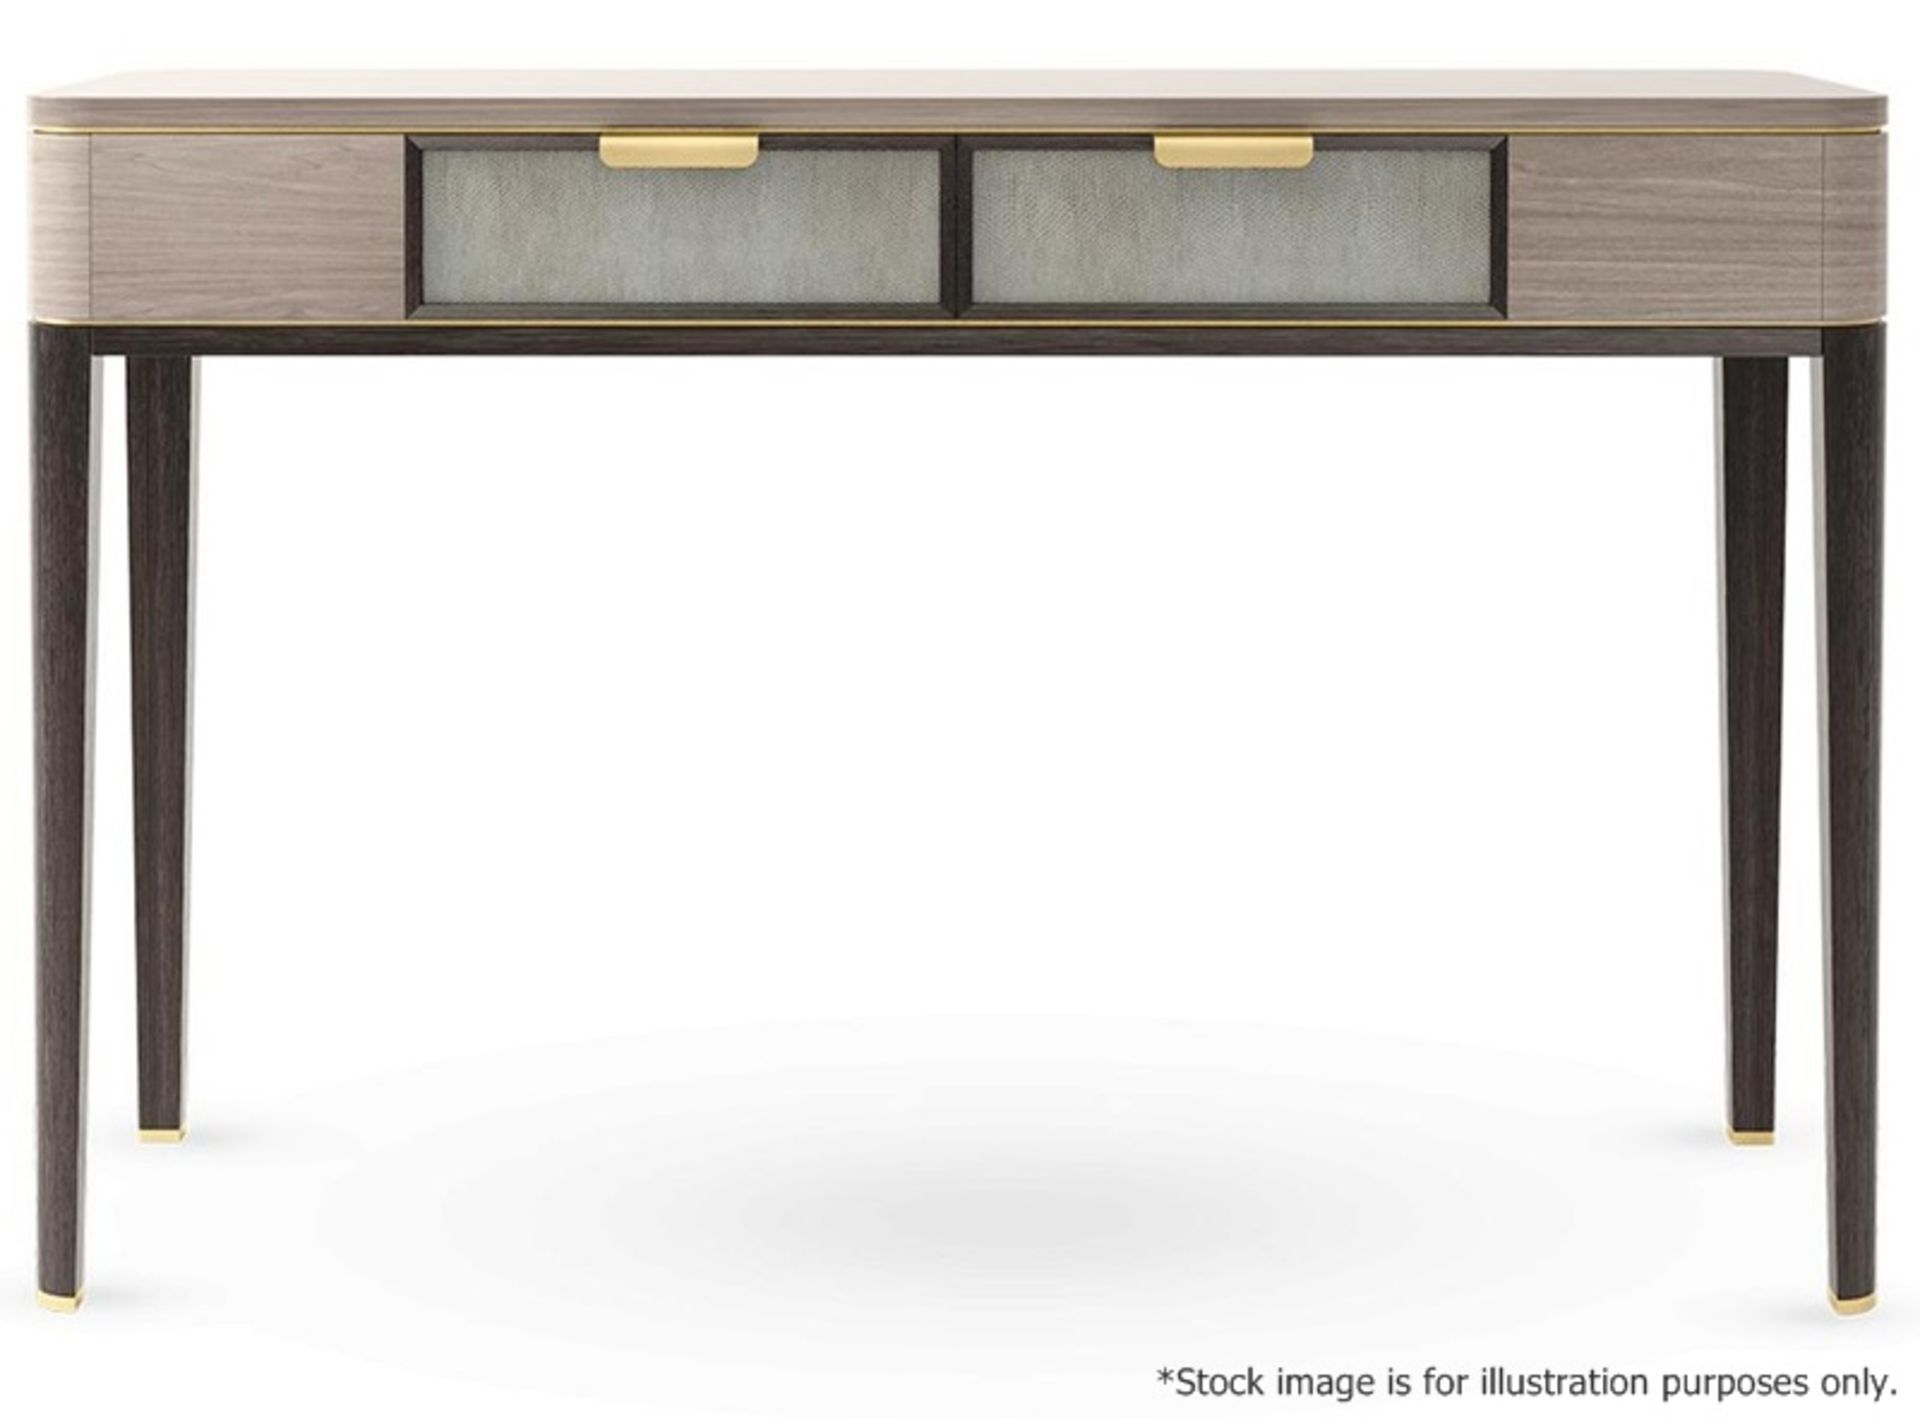 1 x FRATO 'Mandalay' Luxury Designer 2-Drawer Dresser Dressing Table In A Gloss Finish - RRP £4,300 - Image 5 of 17